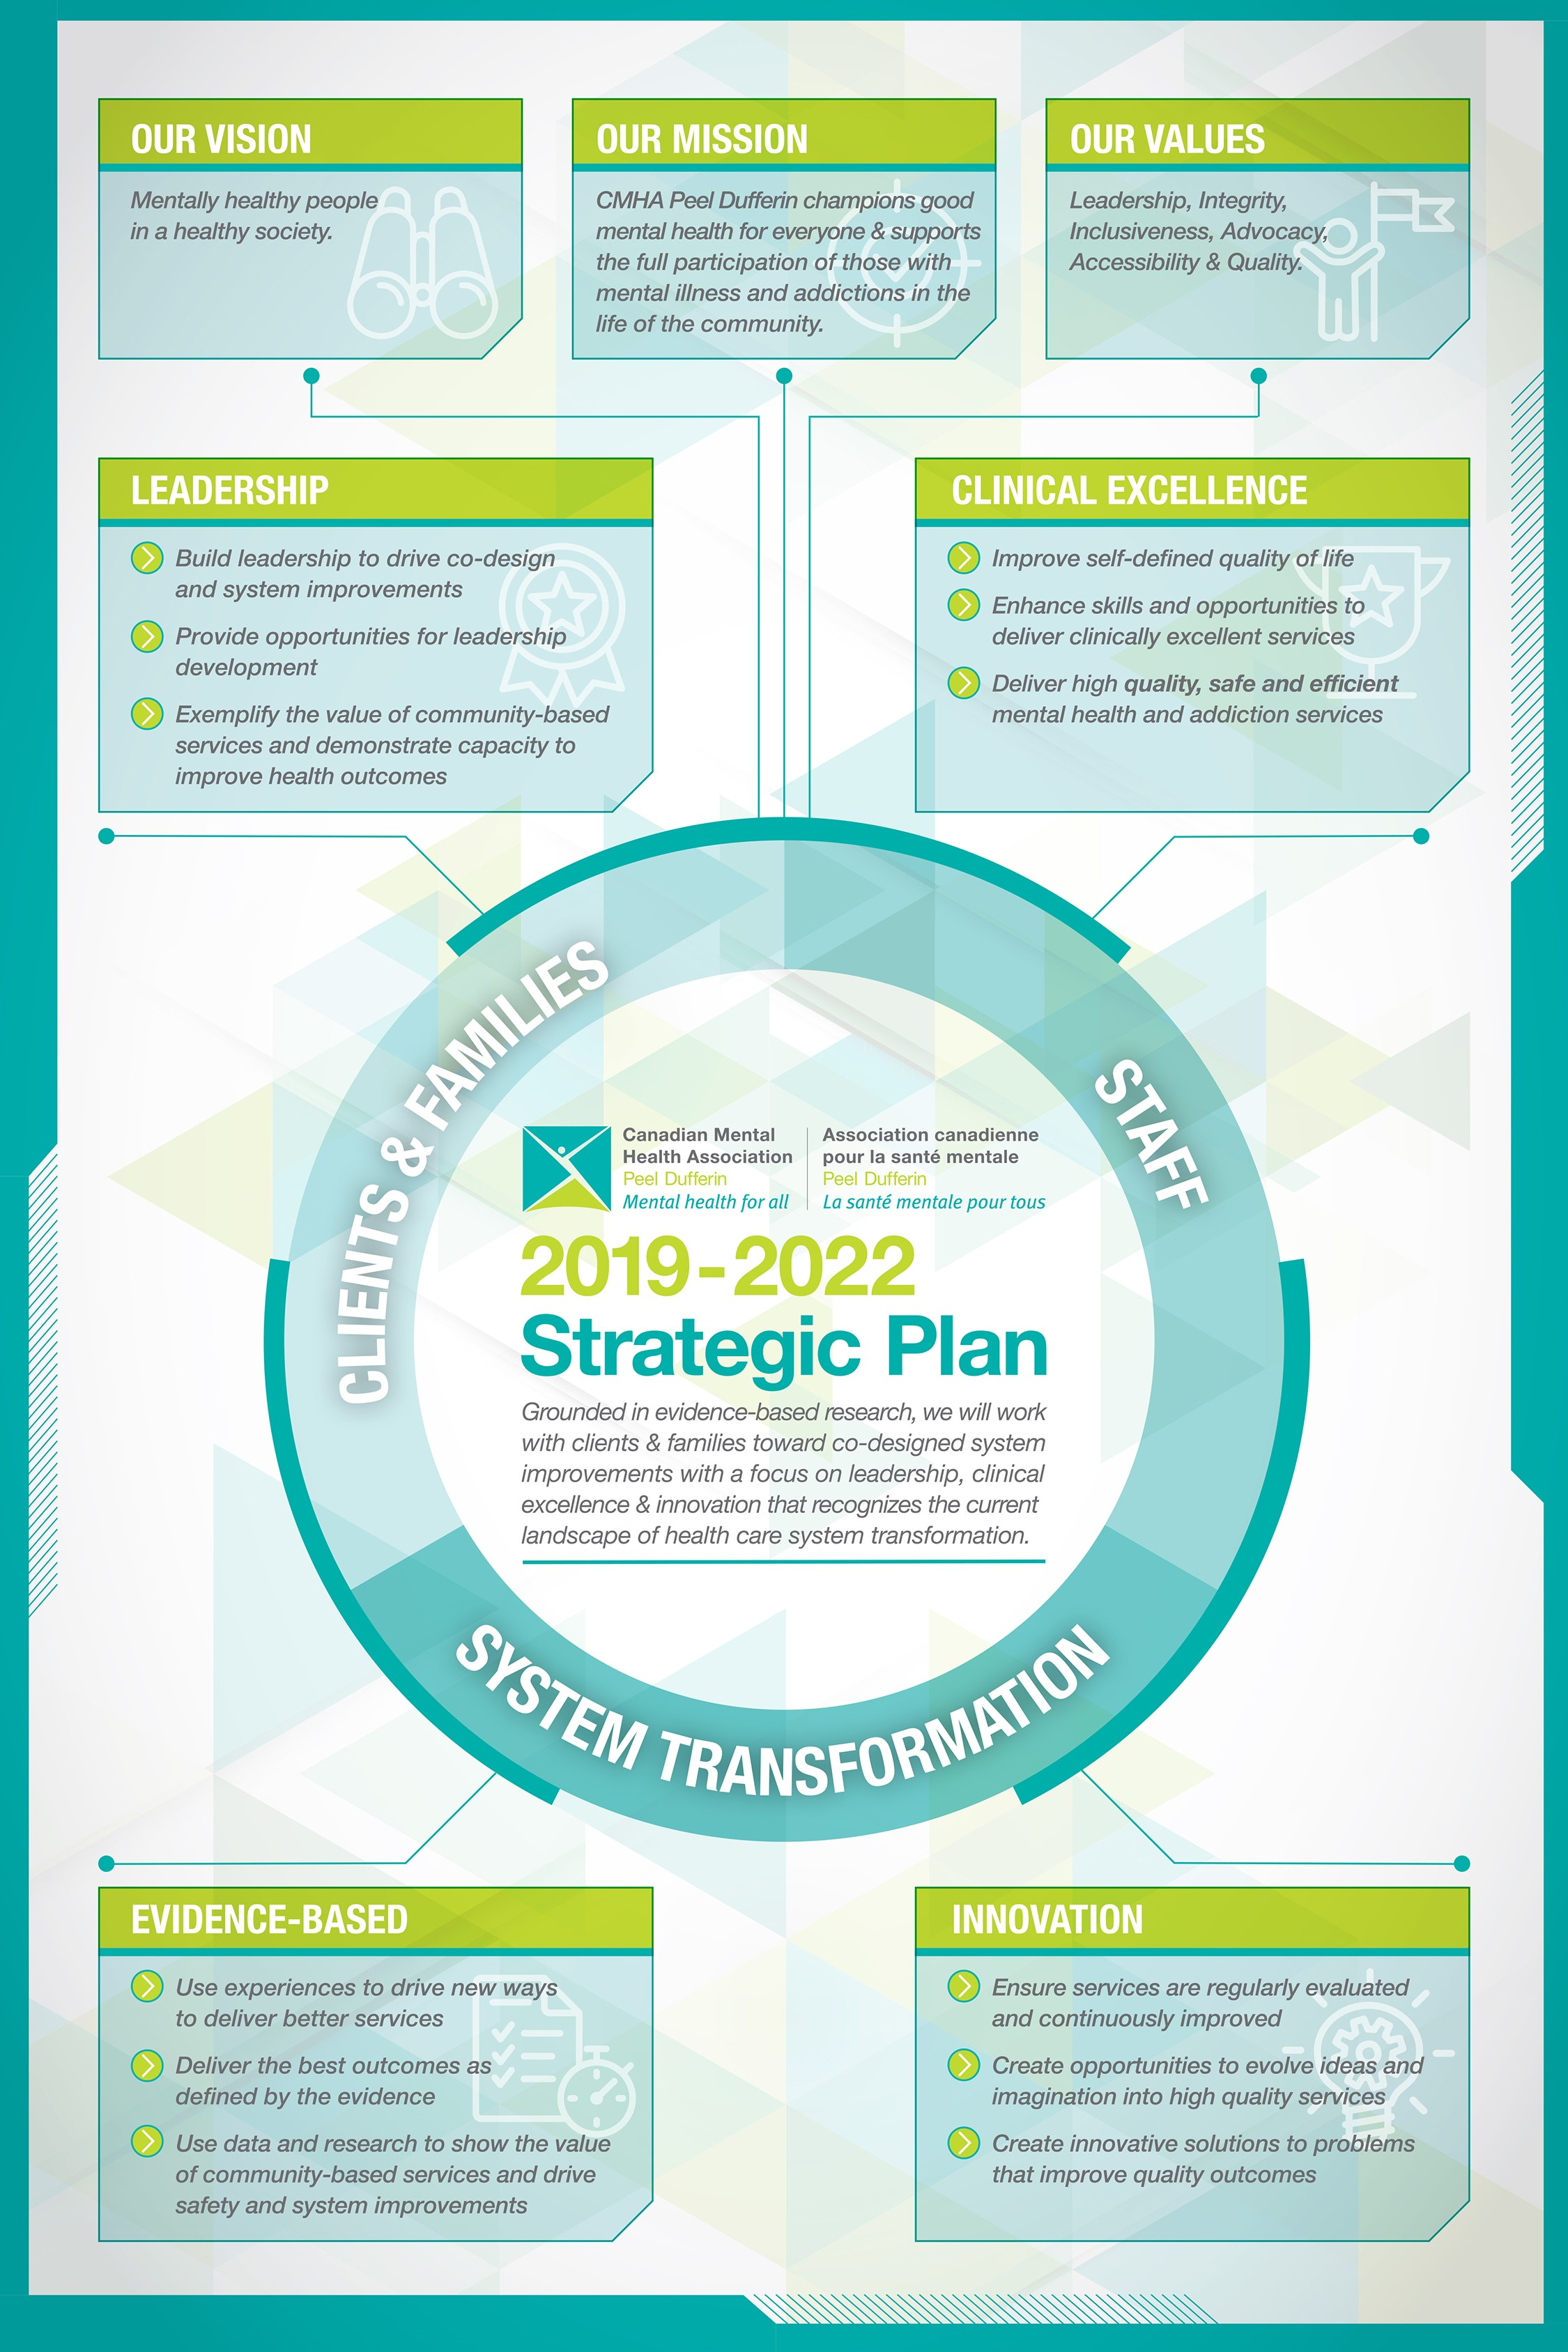 The CMHA Peel Dufferin Strategy